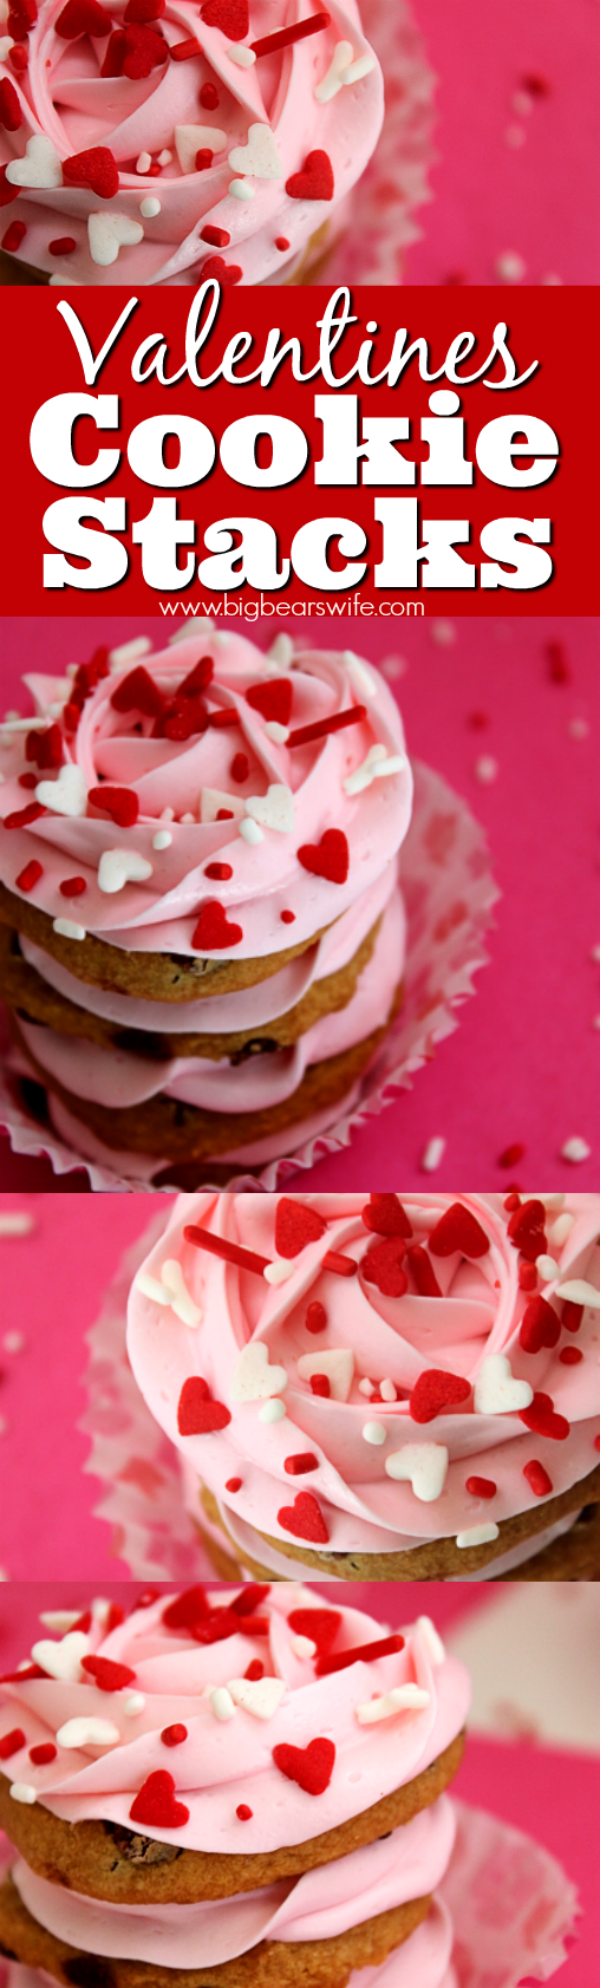 VALENTINES COOKIE STACKS - so easy to make and no baking needed!!!!